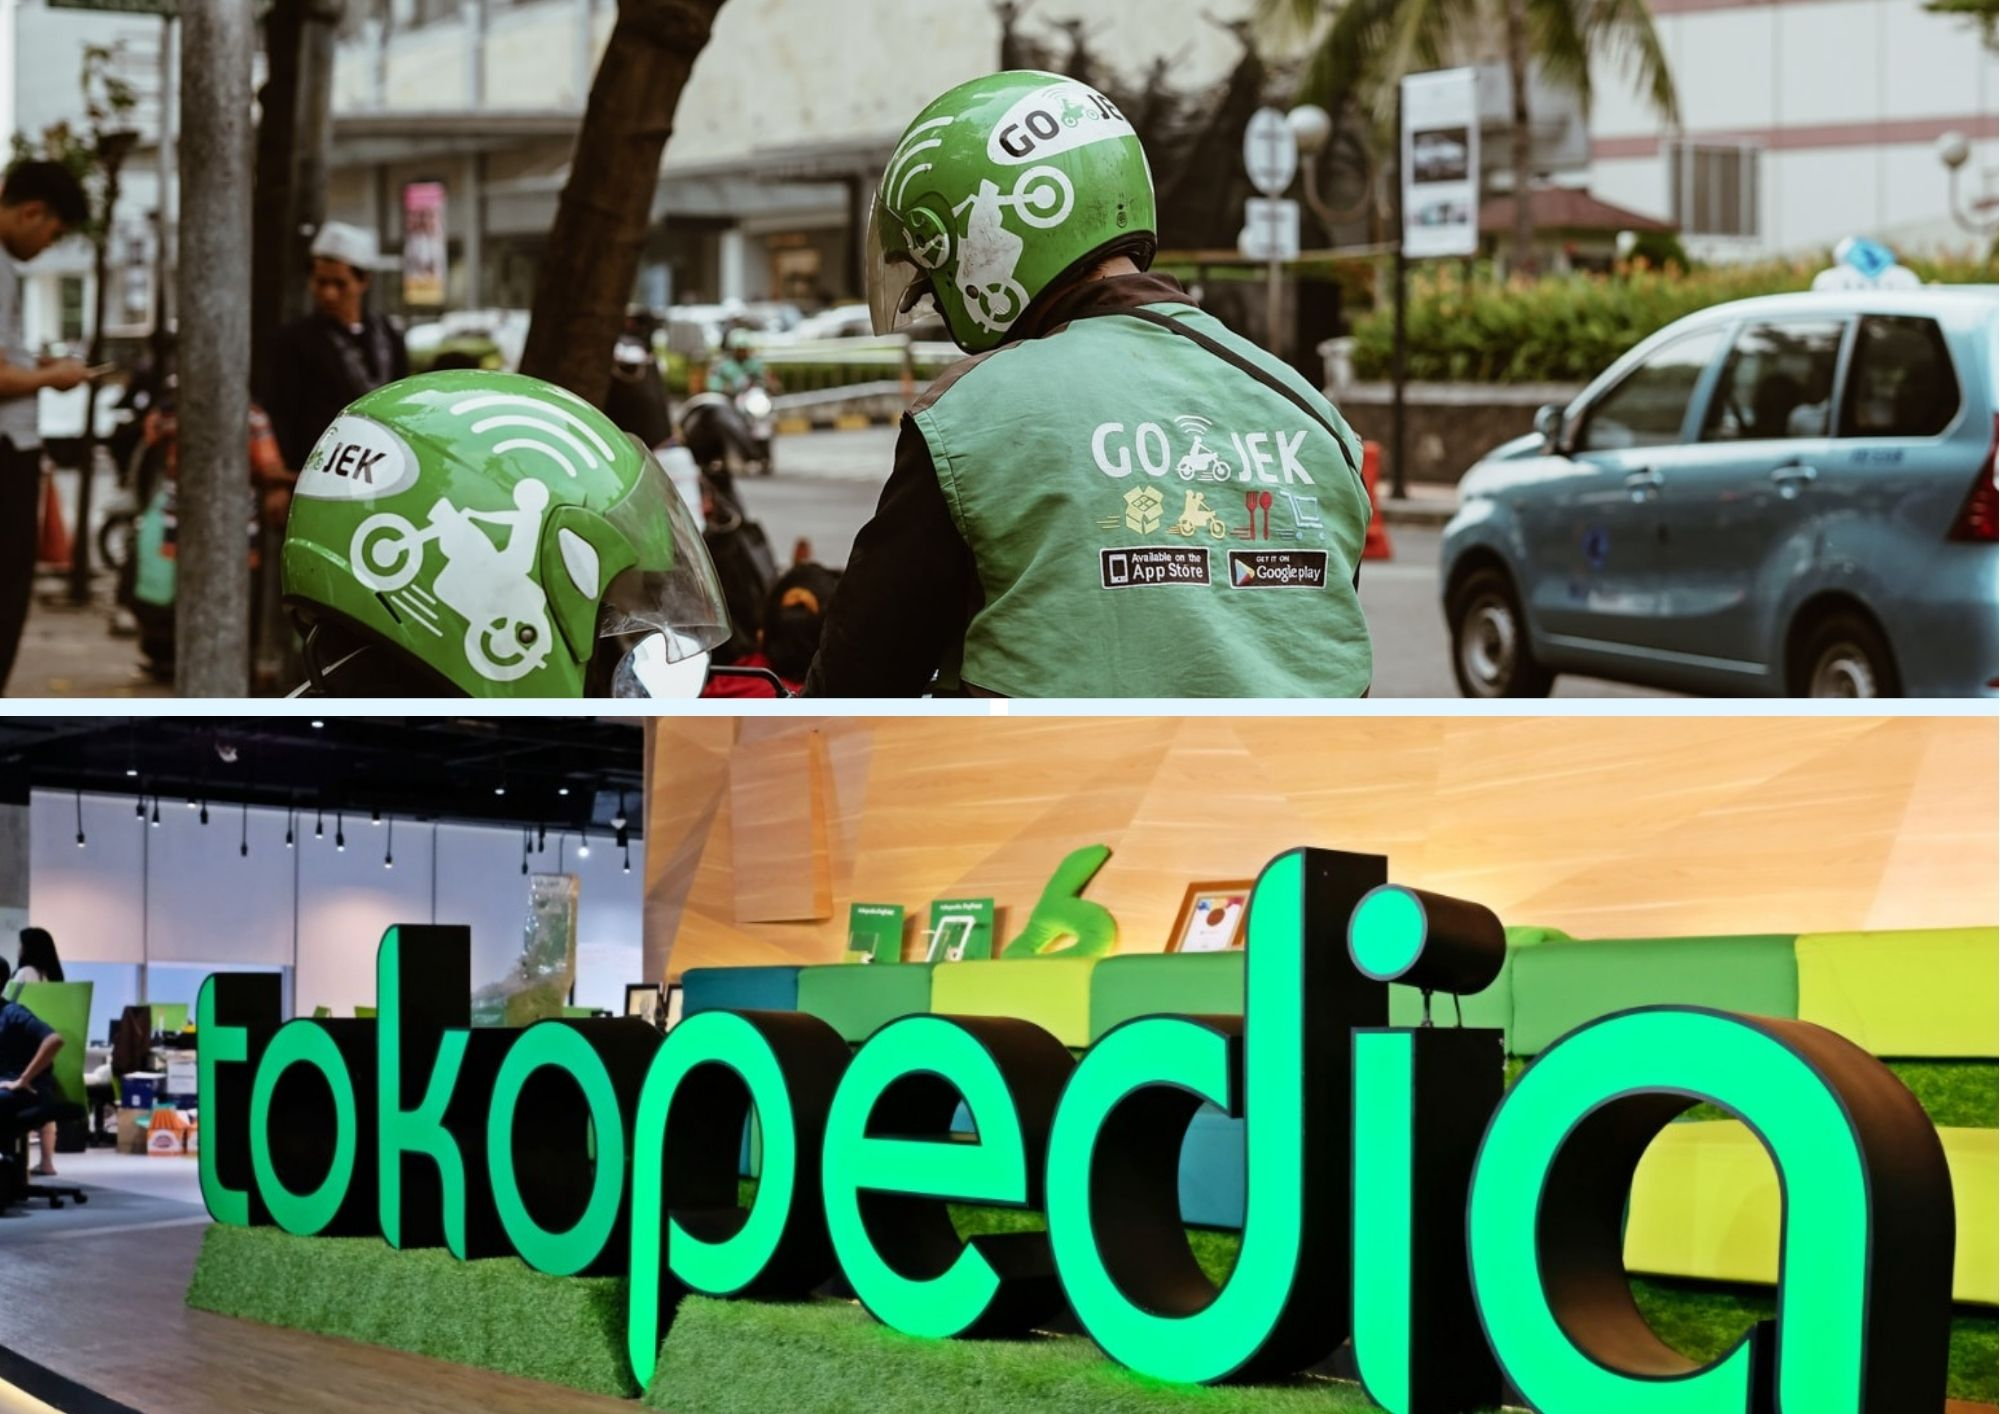 Merger-Gojek-Tokopedia